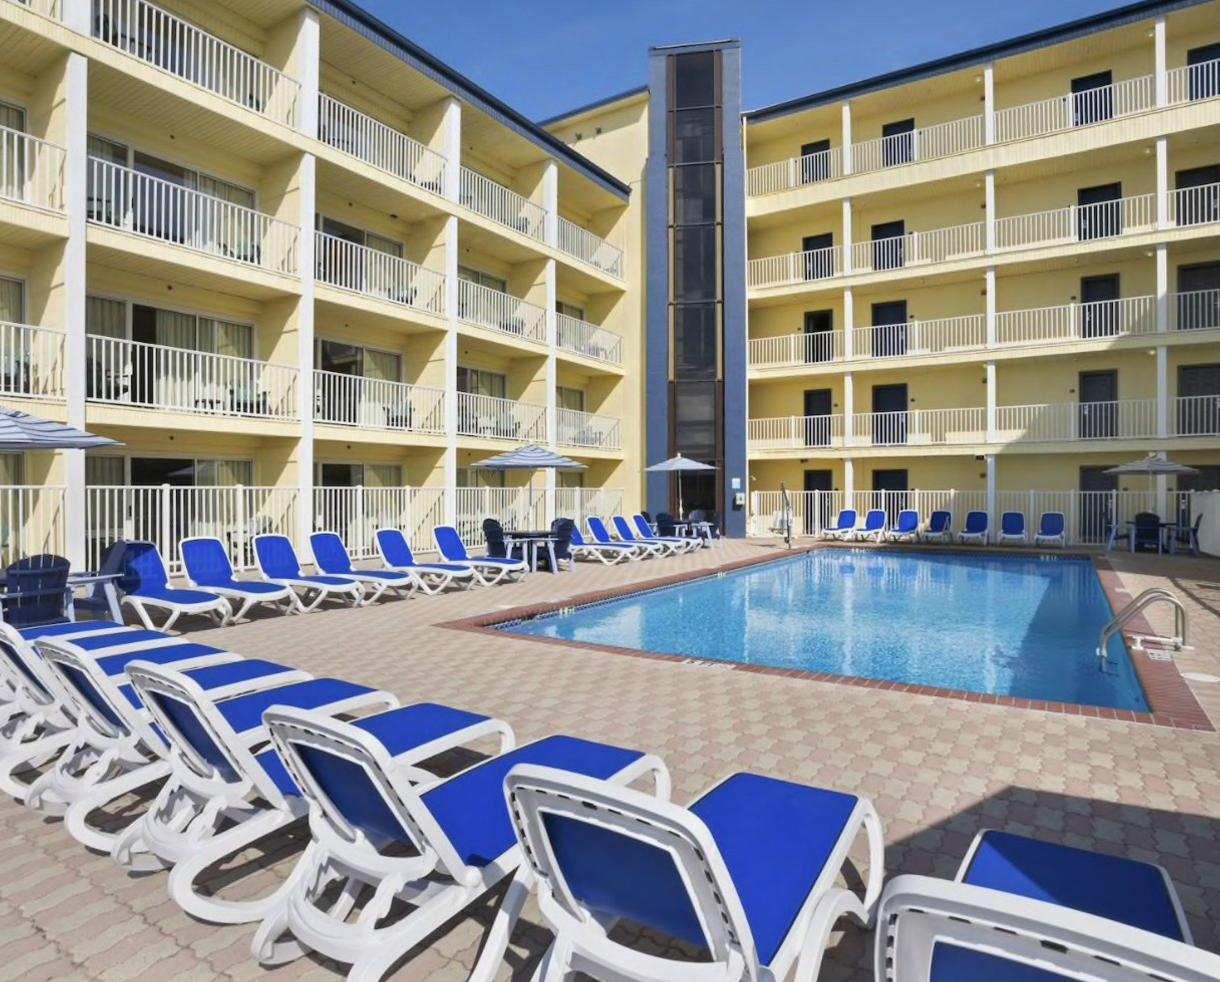 1-Night Weekday Stay at Howard Johnson Oceanfront Inn on the Boardwalk - VALID from May 3 - June 7, 2018